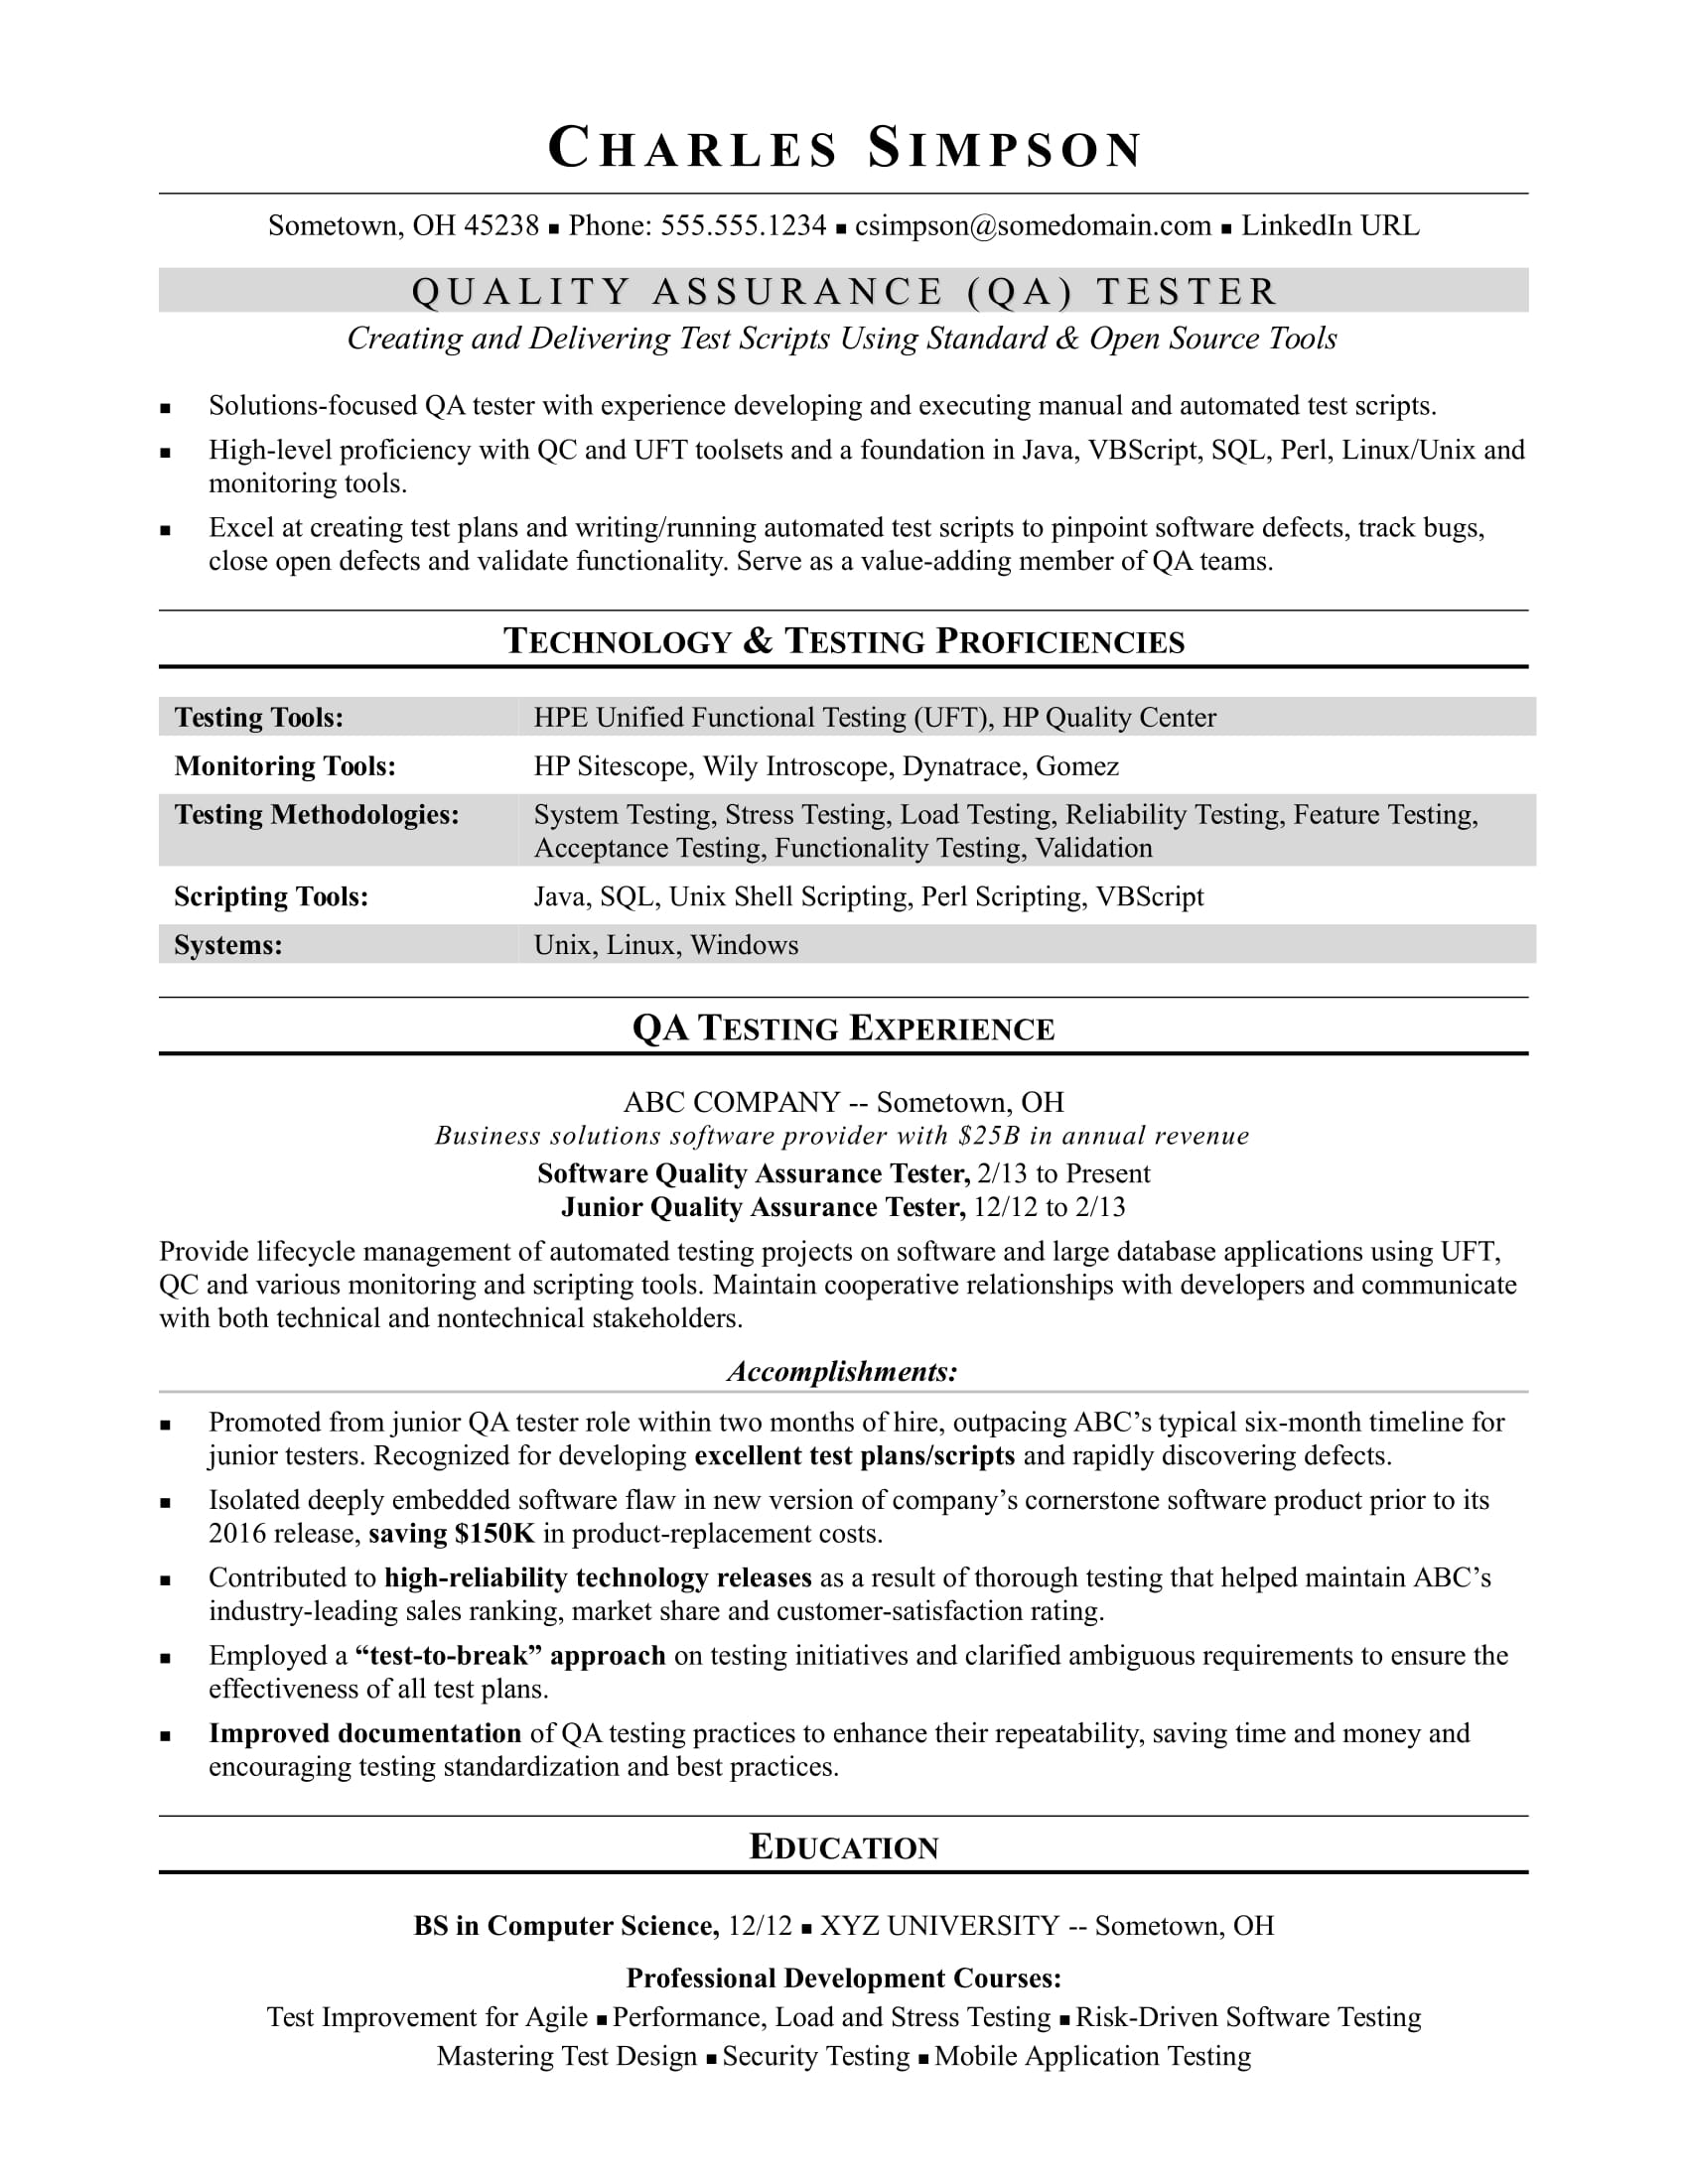 sample resume for a midlevel qa software tester - Sample Qa Resume